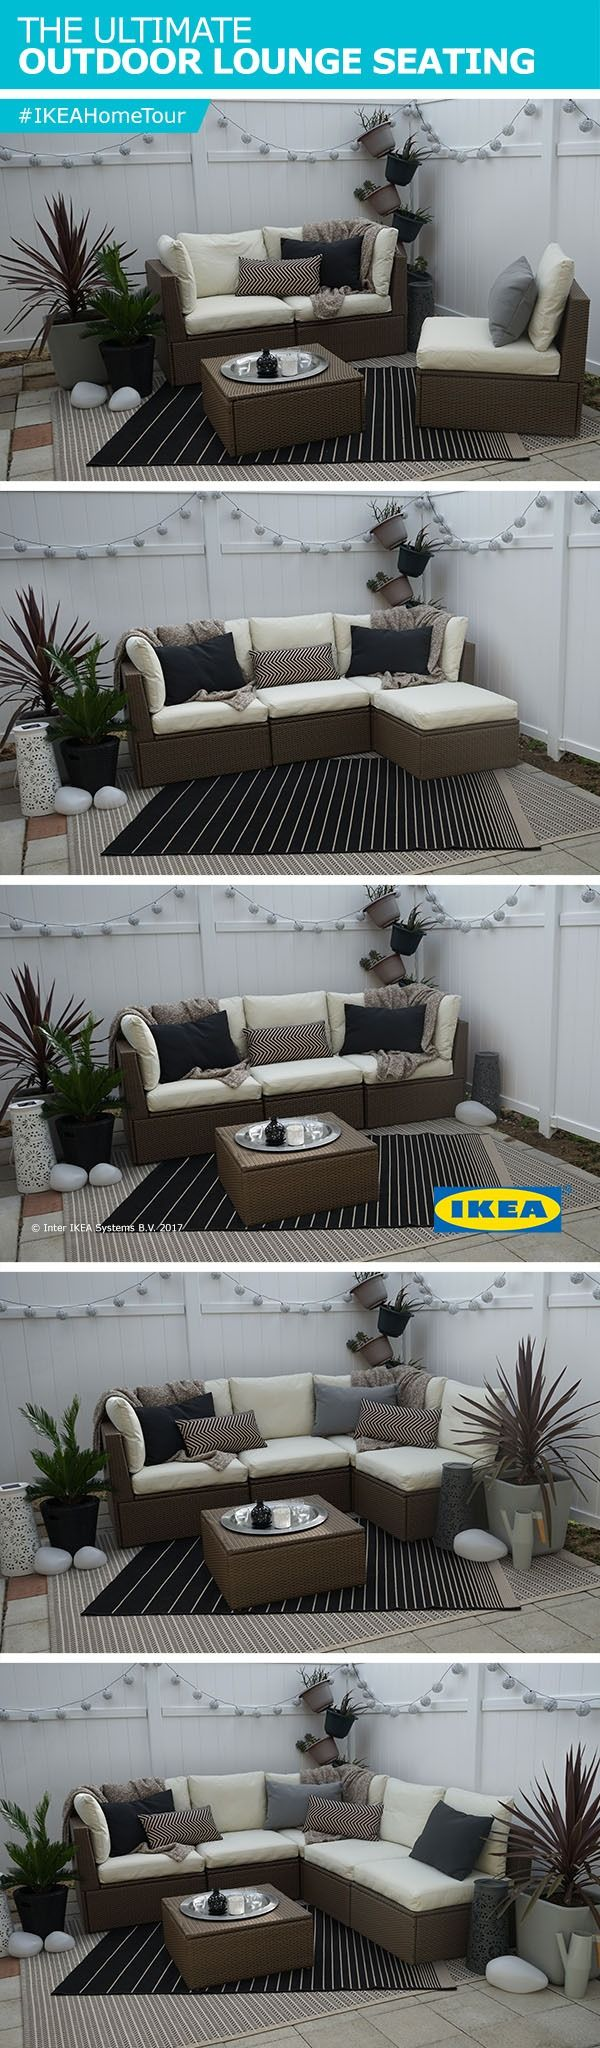 Create A Stylish And Functional Outdoor Lounge With The IKEA ARHOLMA Series Home Tour Squad Used This In Their Makeover For